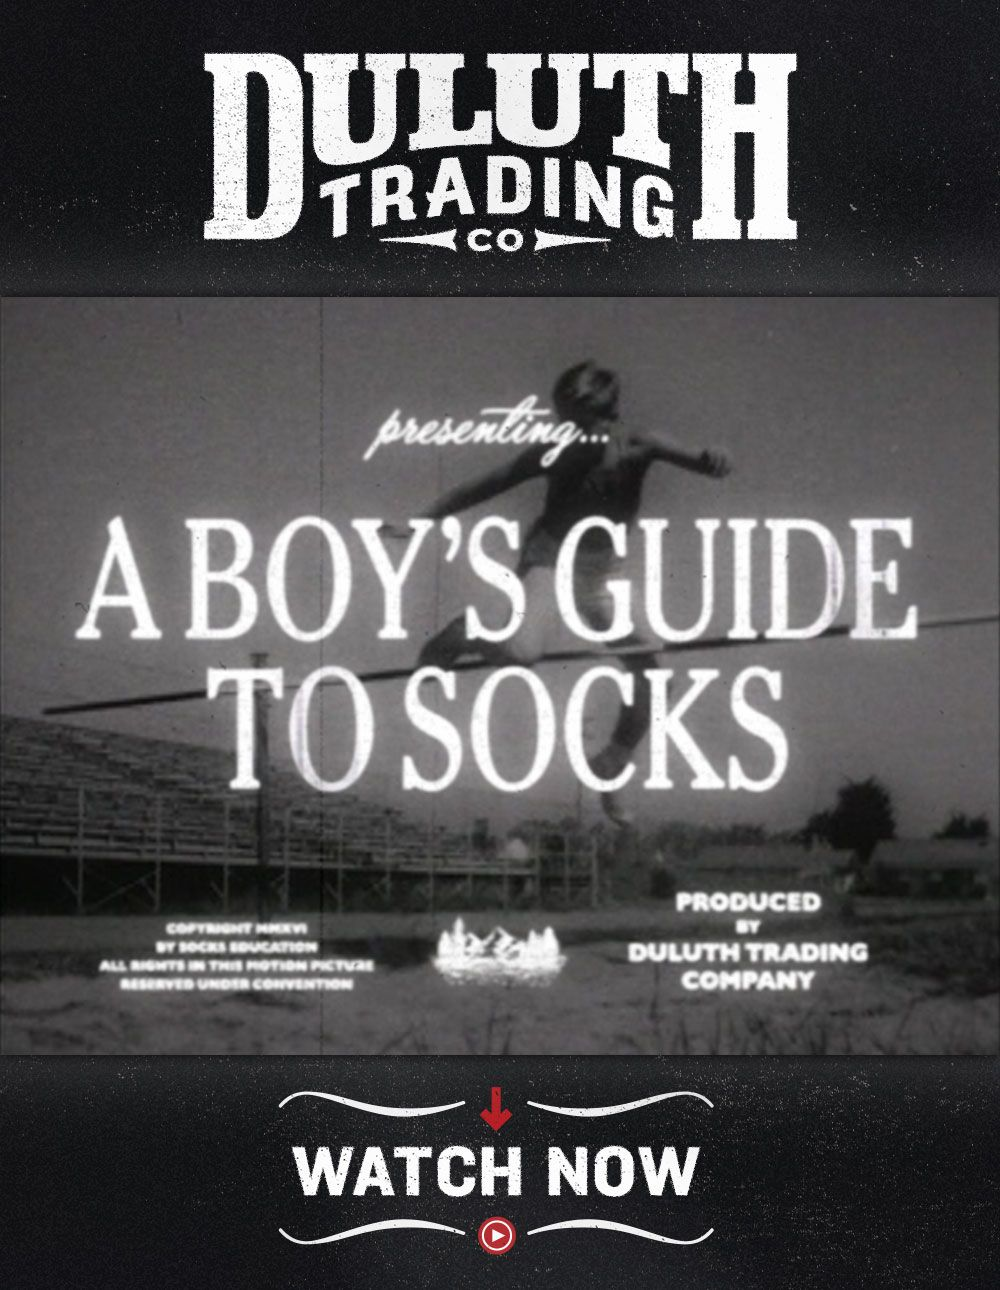 When you make the right choices, socks will always be enjoyable. Tune in to this public service announcement, brought to you by Duluth Trading Co., and find out how you can improve your socks life.